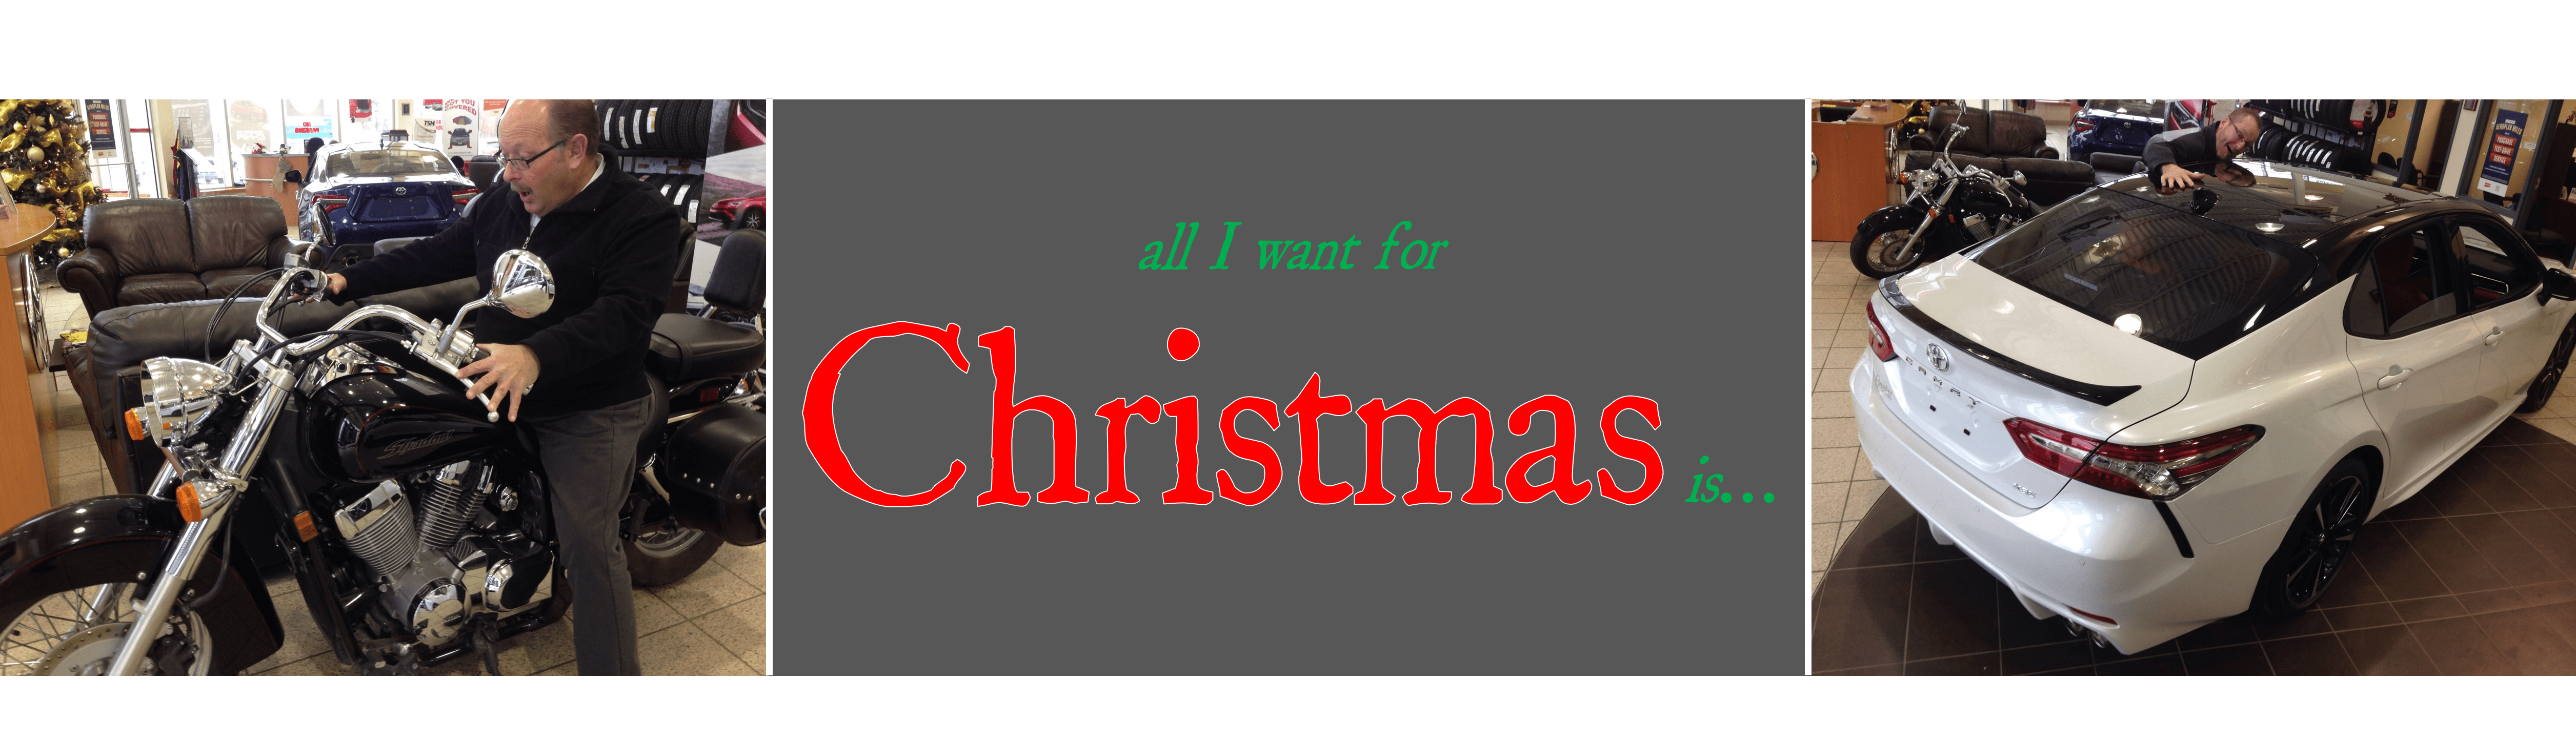 All I want for Christmas is&#8230&#x3B;